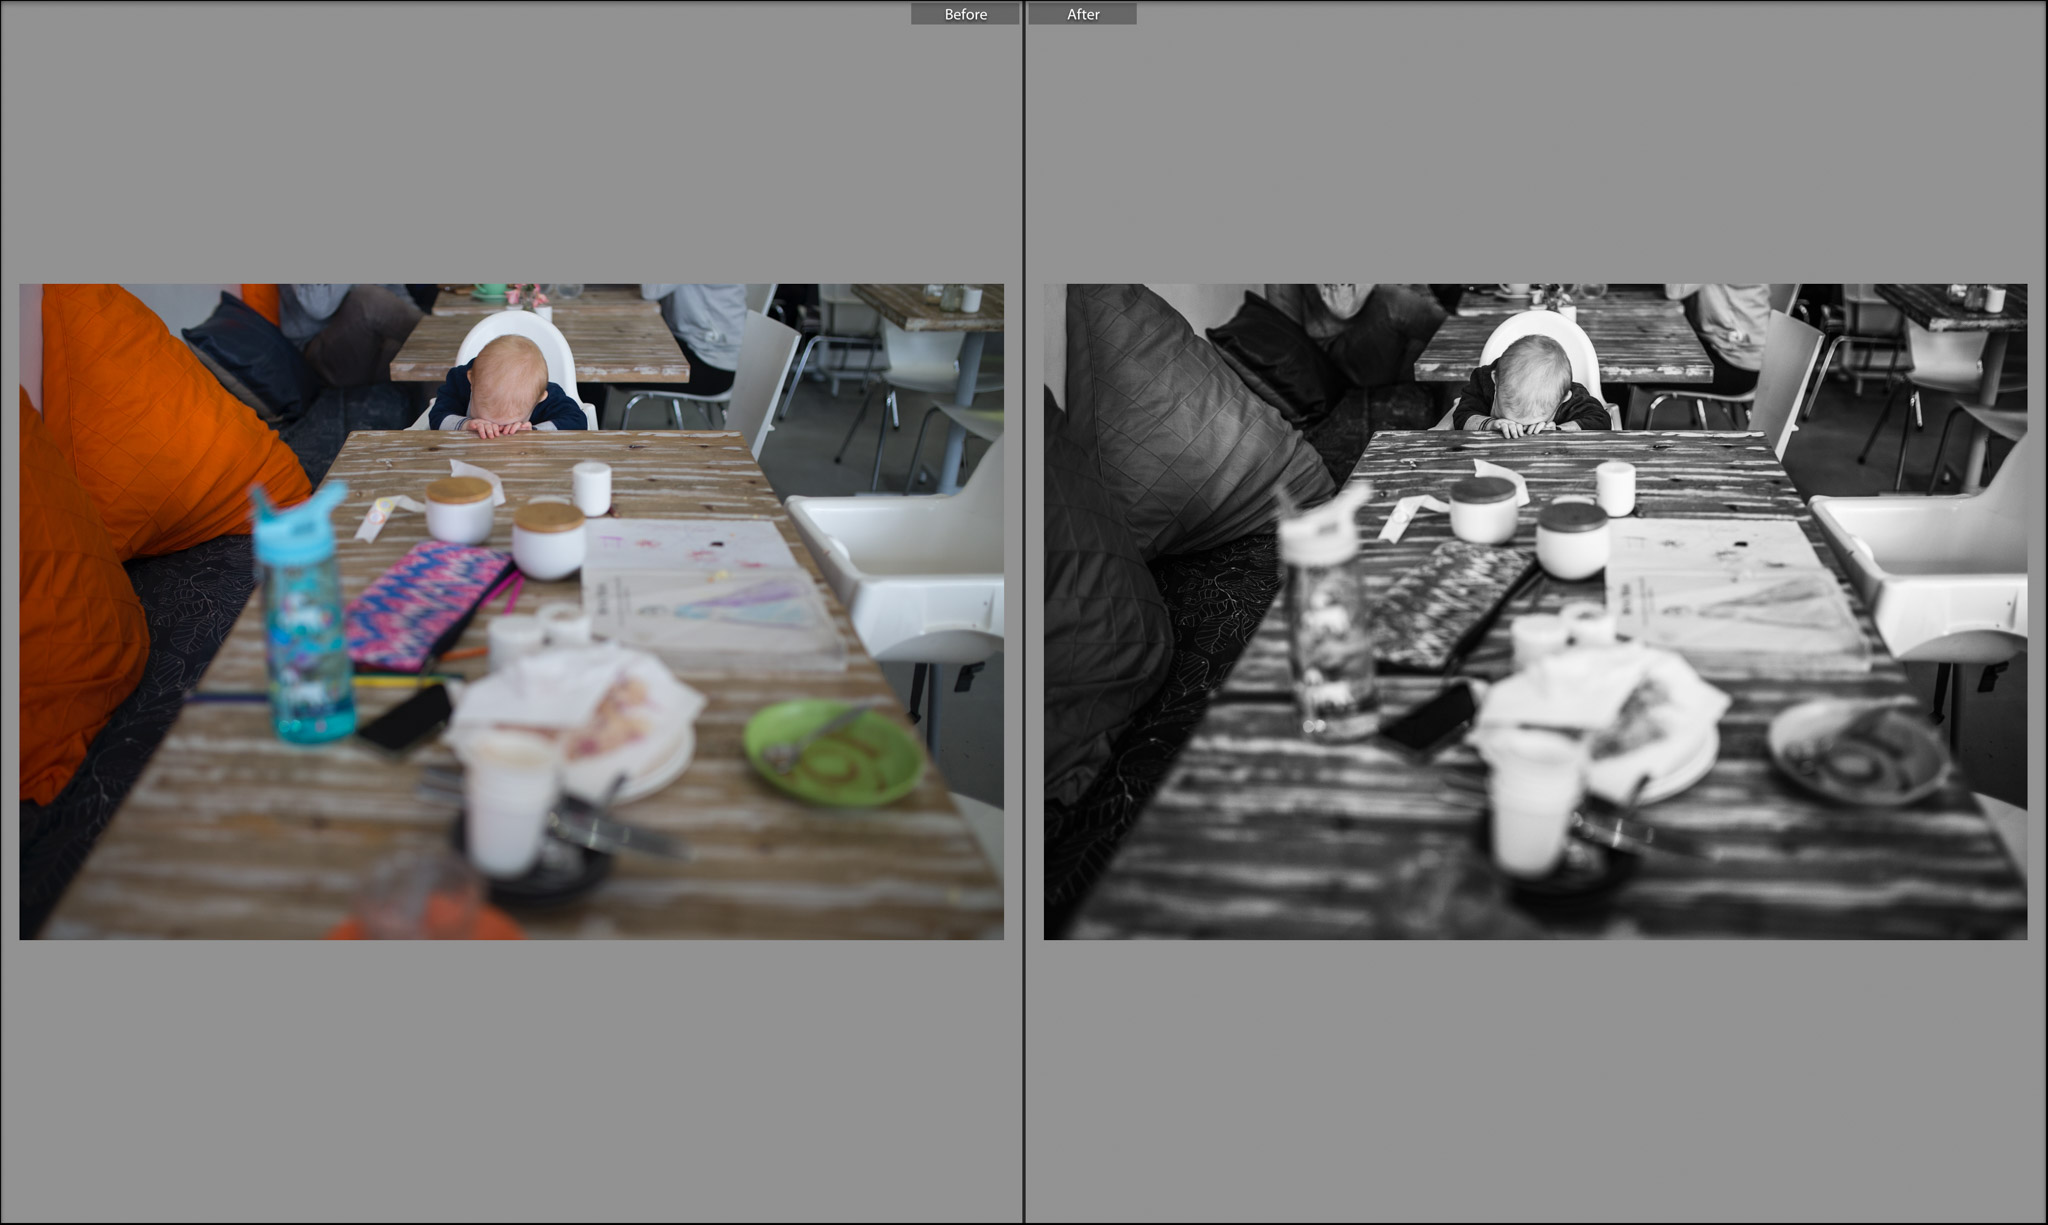 before and after baby boy sleeping at cafe.jpg